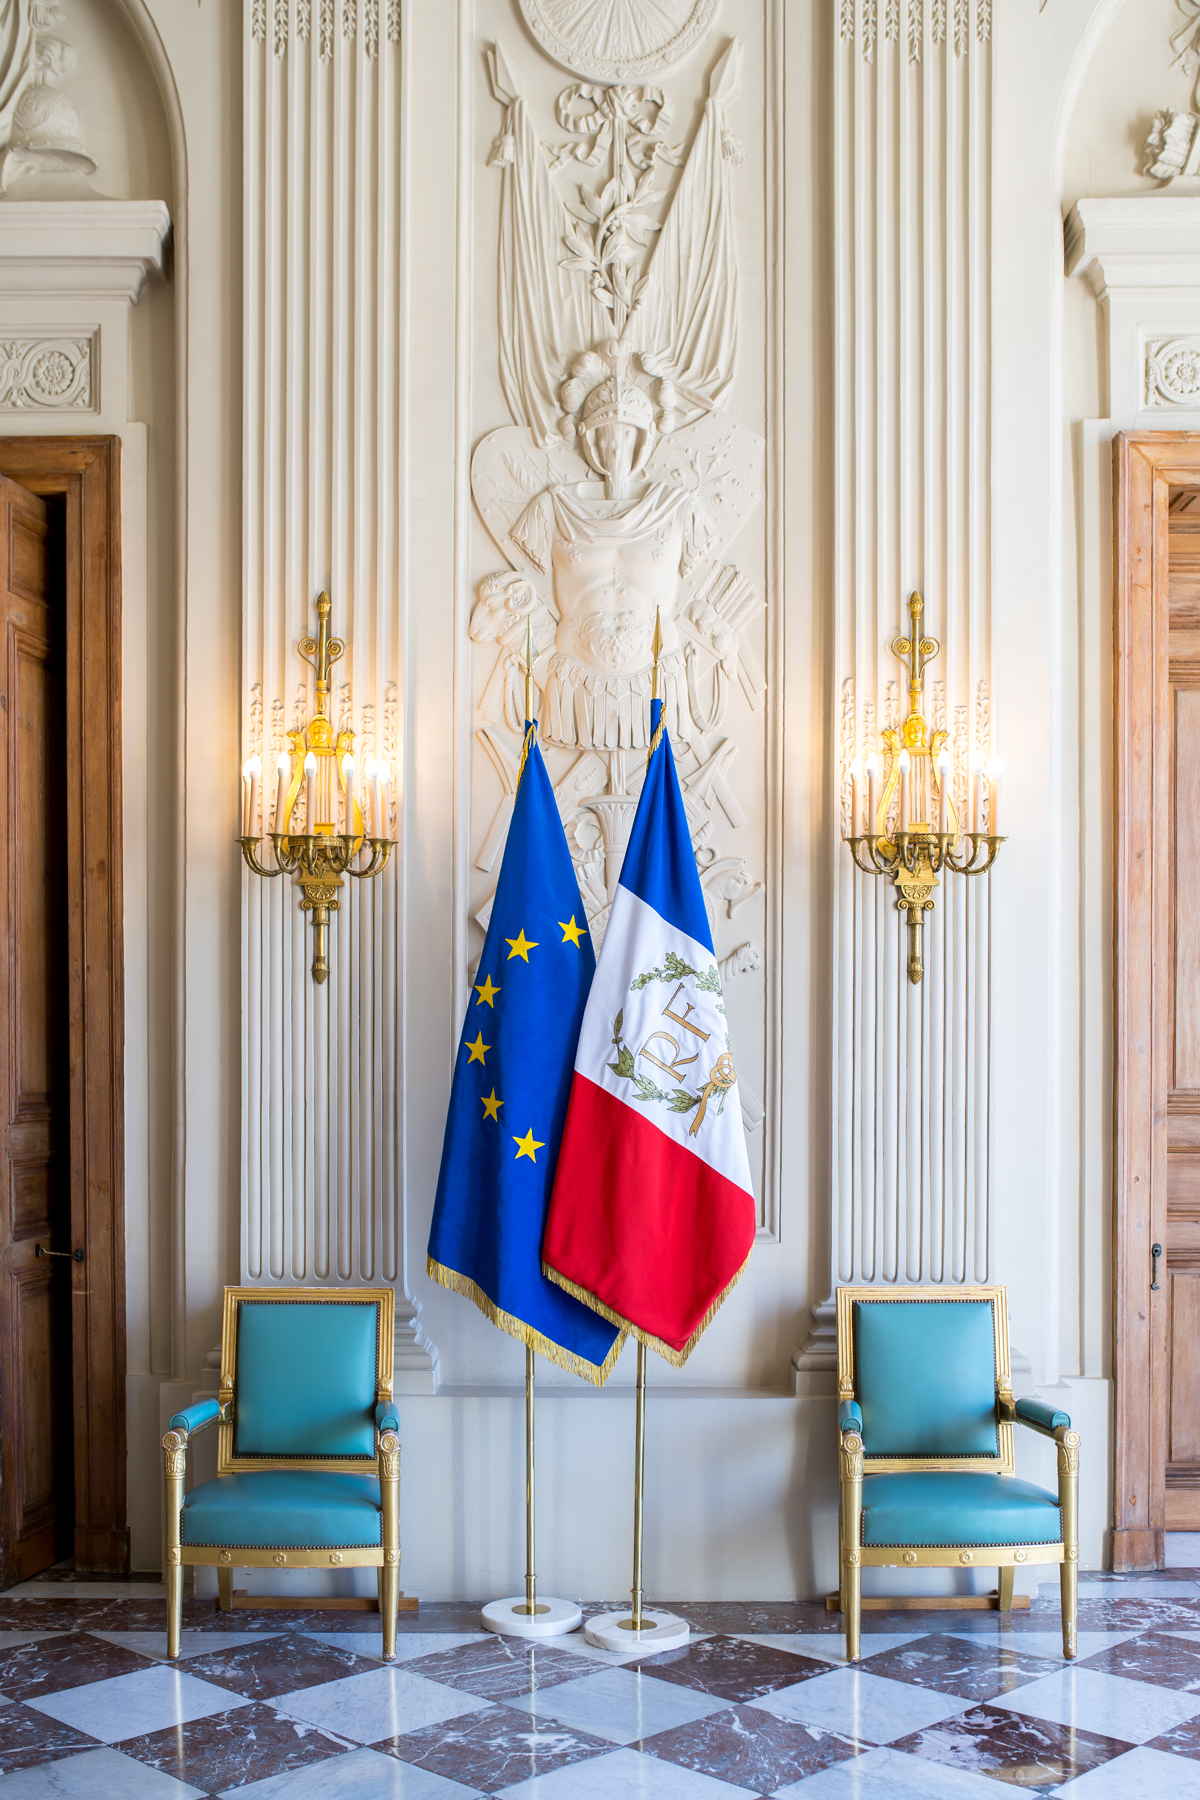 Stacie Flinner Visit Assemblee Nationale Paris-1.jpg